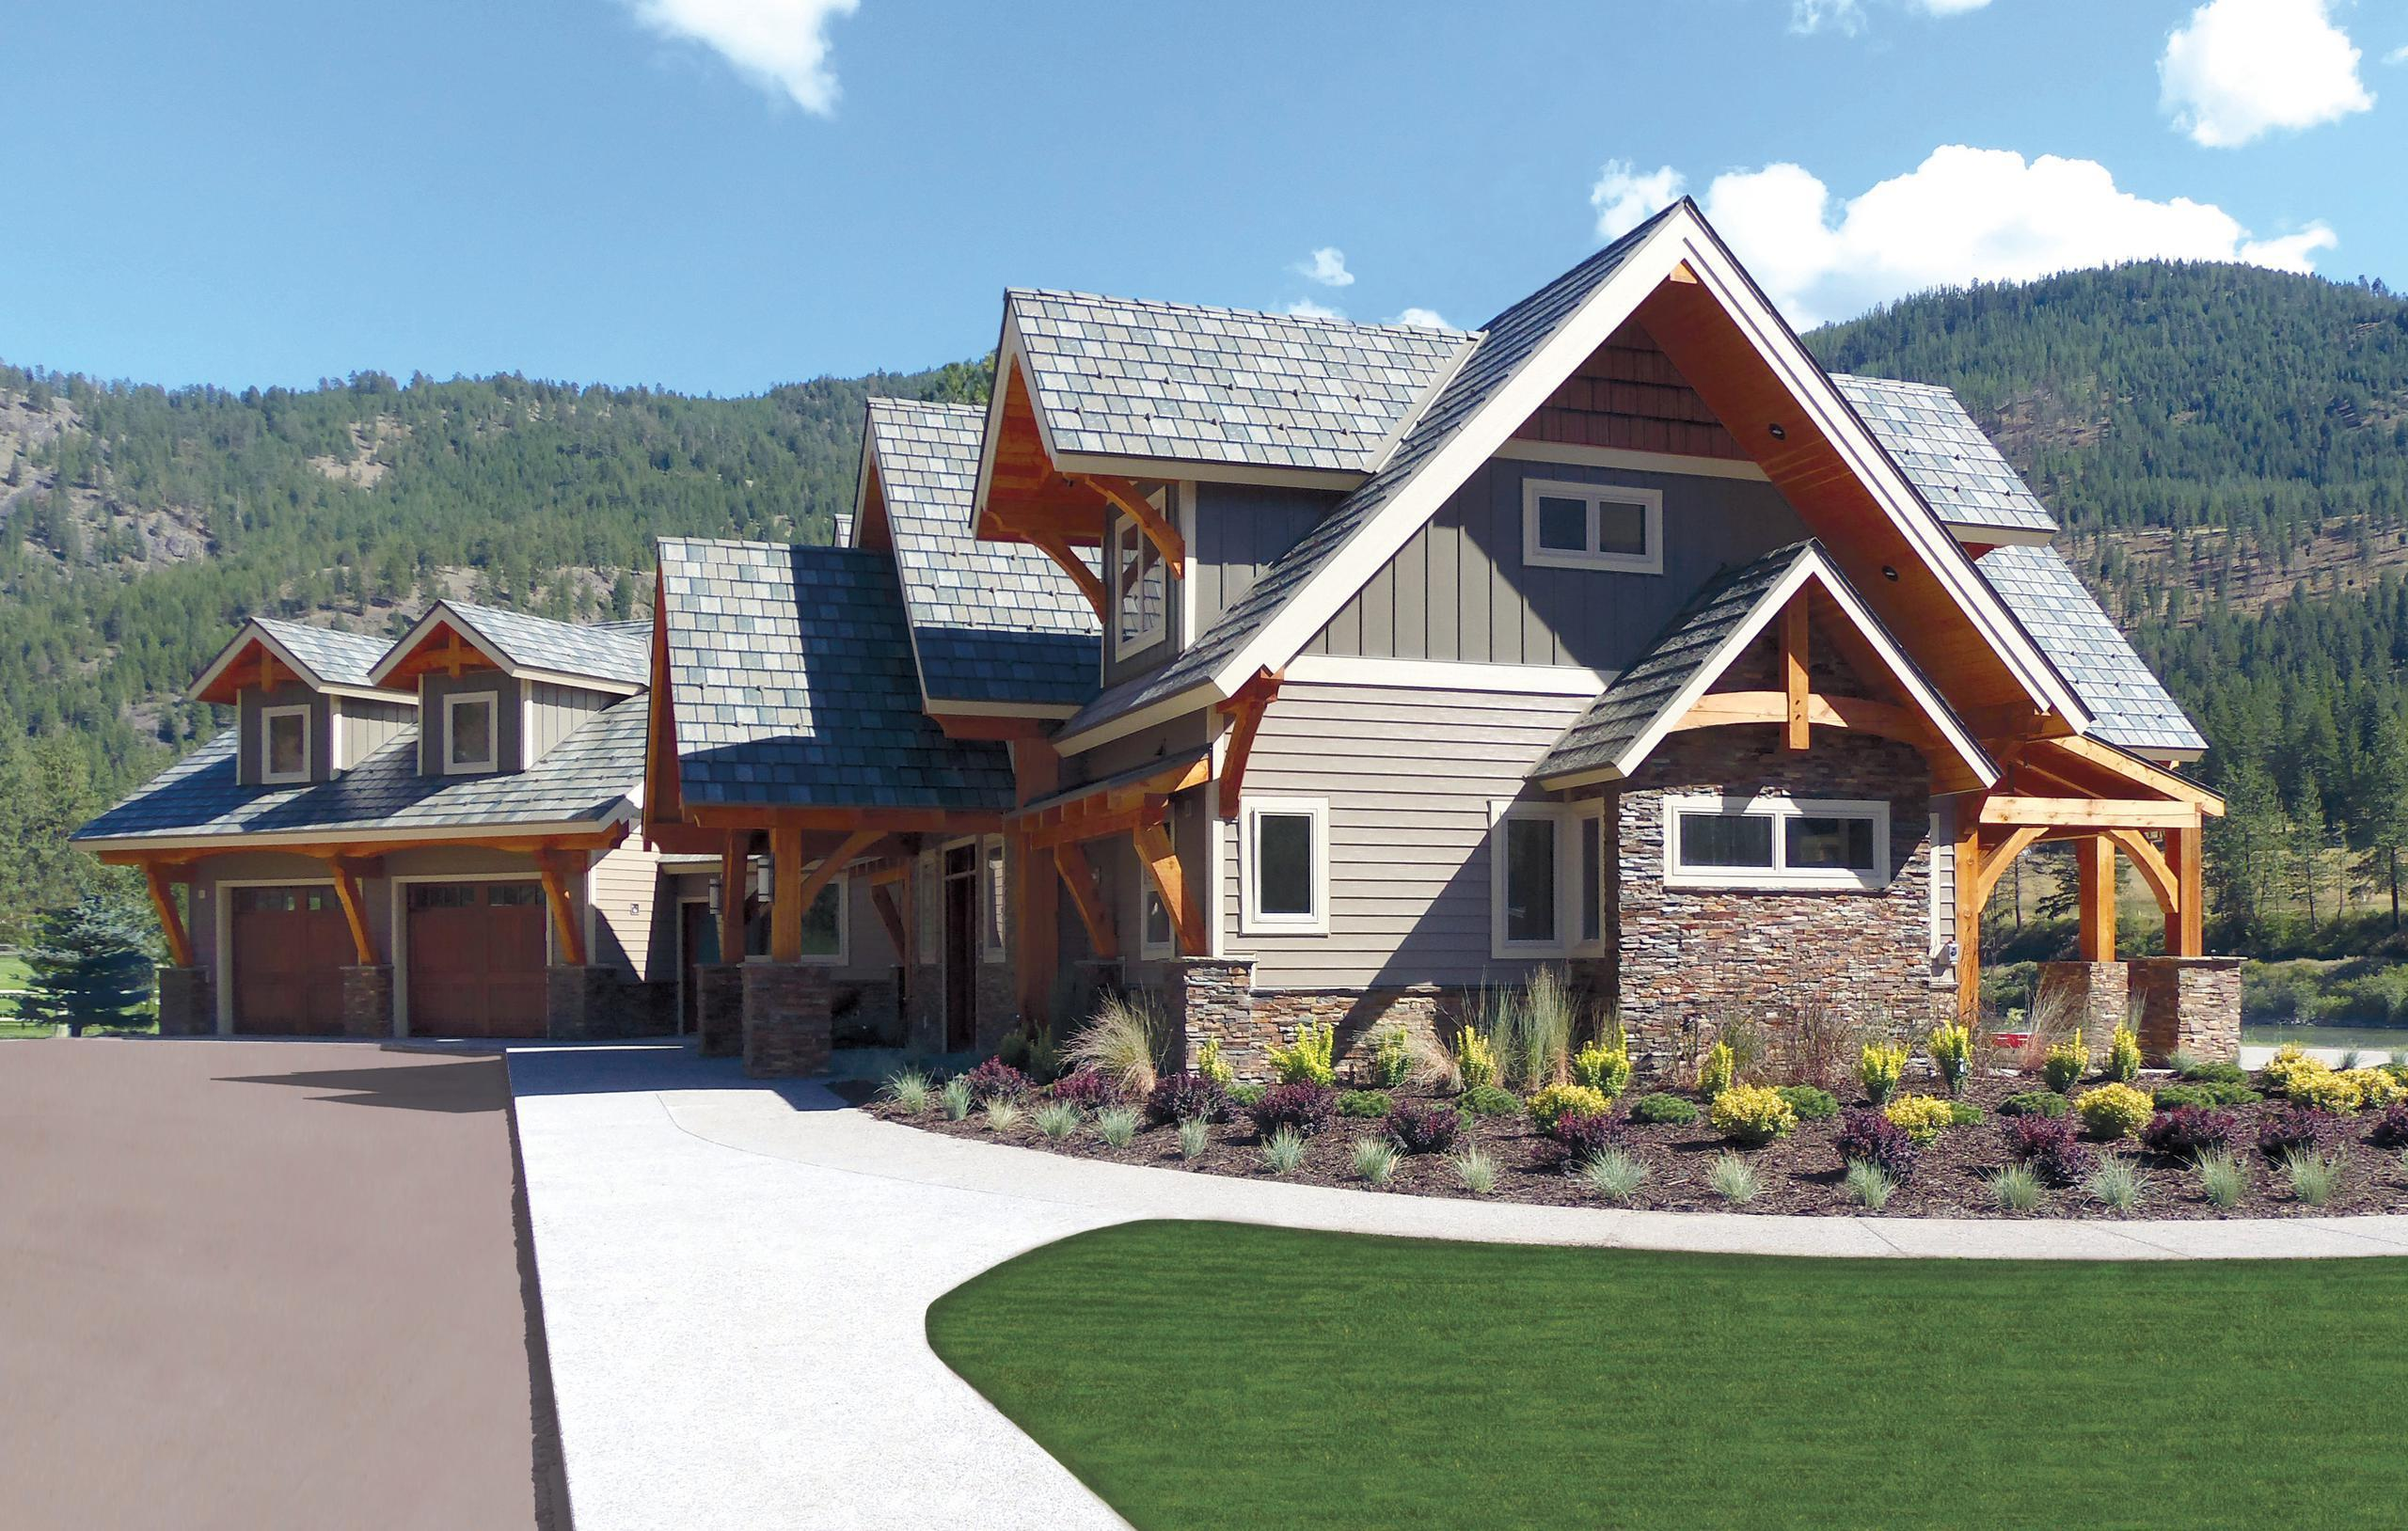 """Located in the mountains of Montana, this home showcases the beauty of EDCO's teel Arrowline Slate Roofing in T-Tone Blend, Vertical 12"""" Board and Batten in T-Tone and Single 6"""" Traditional Lap Siding. EDCO's color-coordinated products, from top to bottom, offer homeowners and professionals versatility when it comes to designing a stunning home"""